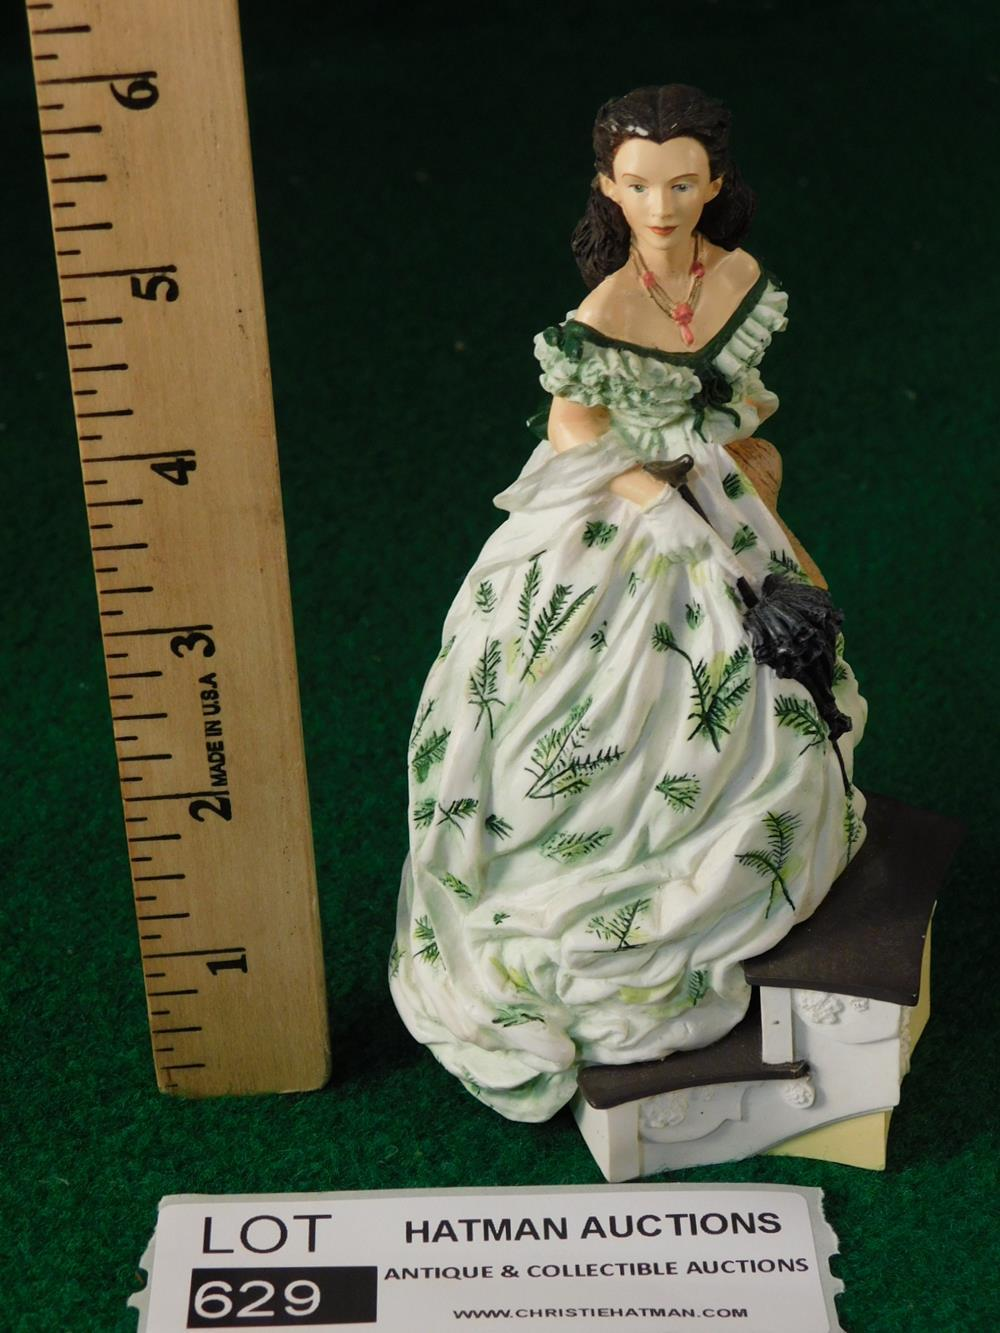 GONE WITH THE WIND FIGURINE ANTIQUES AND COLLECTIBLES